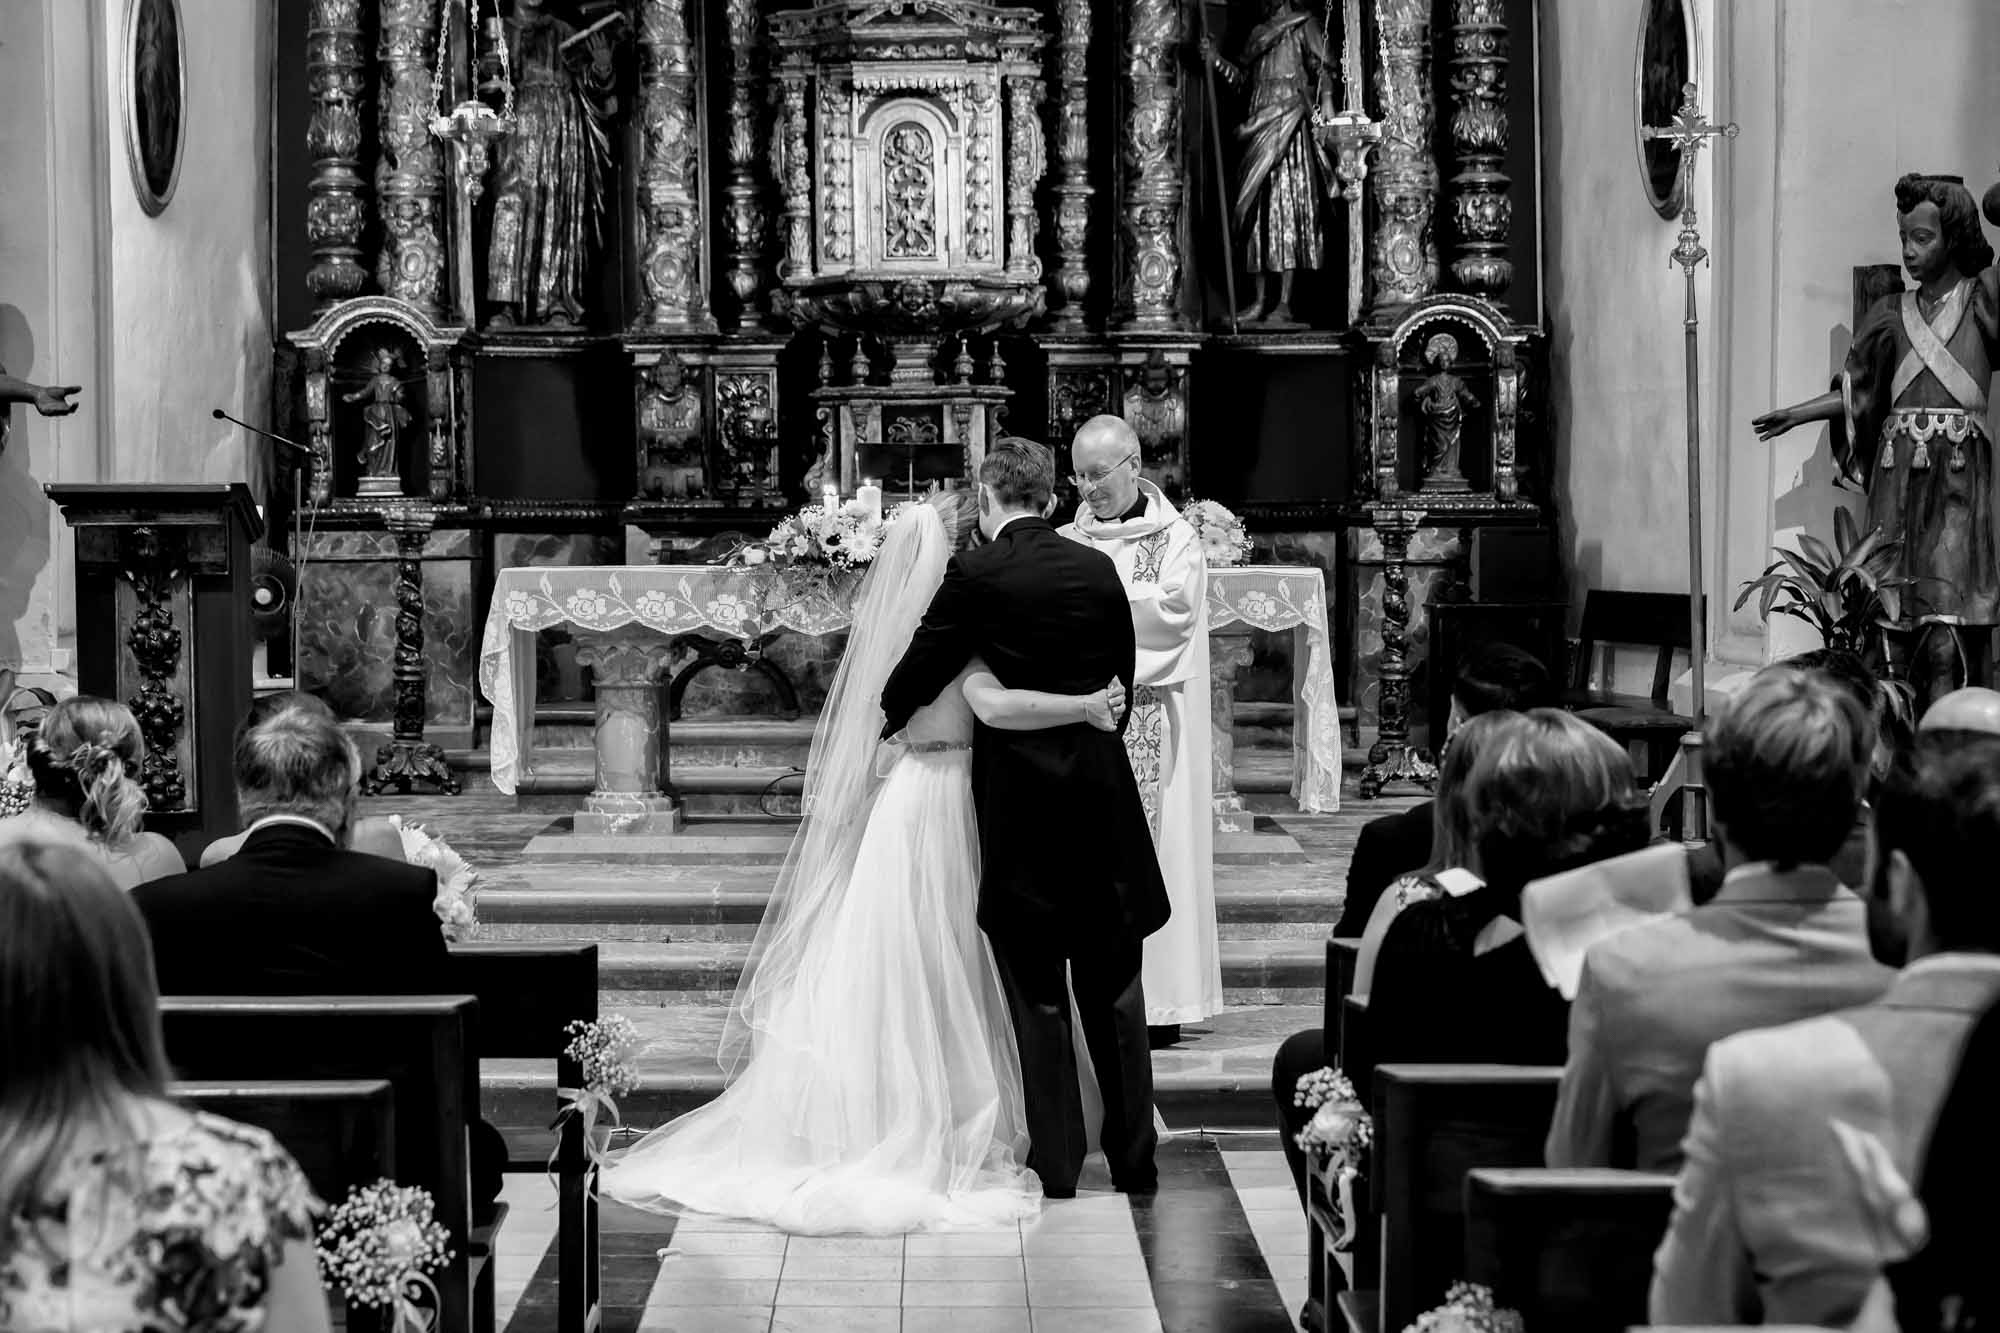 The bride and groom hug after their wedding at the church in Fornalutx, Mallorca